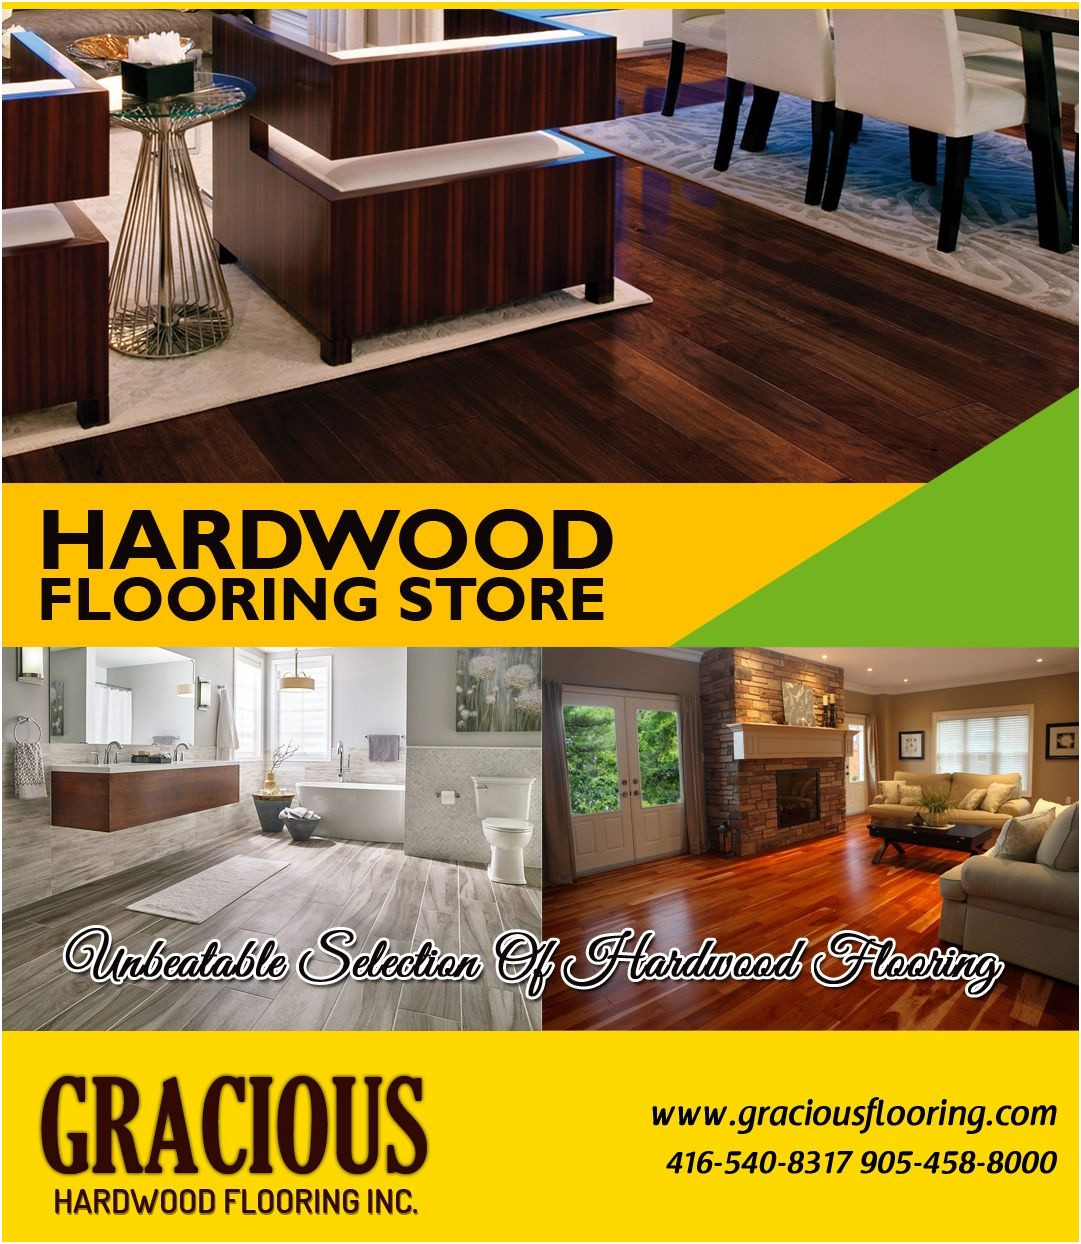 pictures of hardwood floors with borders of how much is wood flooring flooring design regarding how much is wood flooring unique hello guys if you want to purchase best and and